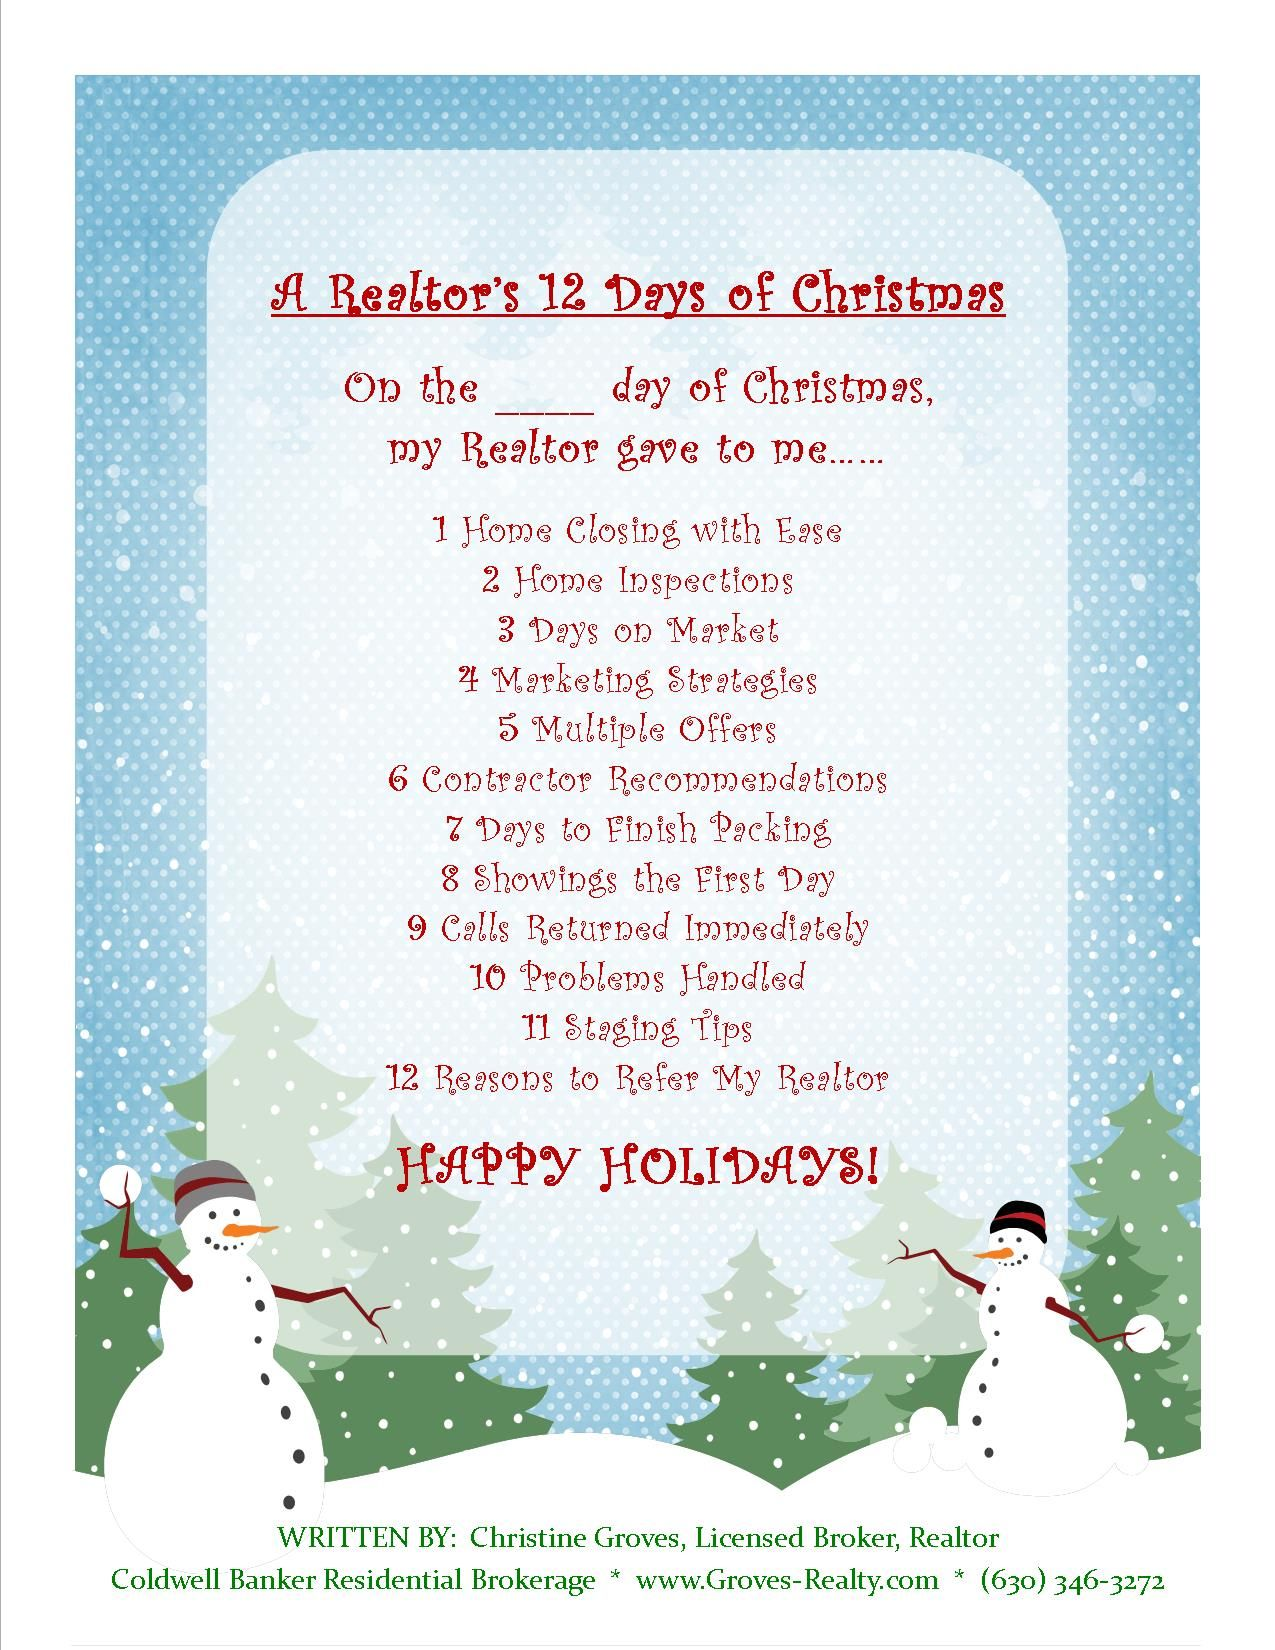 Happy Holidays From Groves Realty Coldwell Banker Residential In Chicagoland Real Estate Humor 12 Days Of Christmas Chicagoland